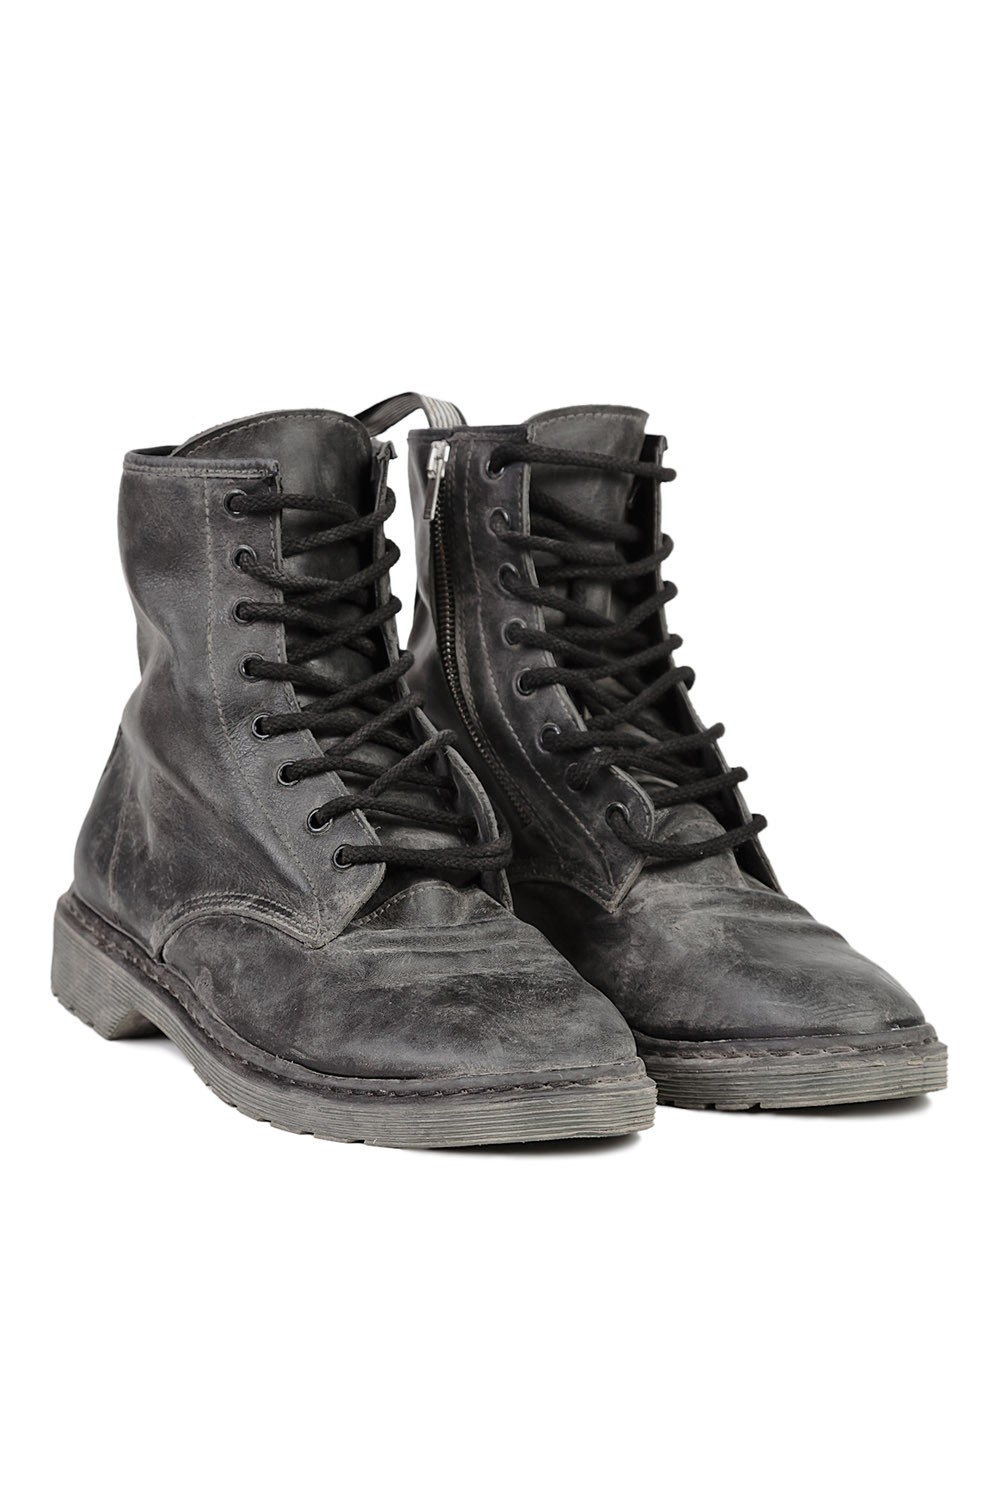 golden goose deluxe brand mens college lace up boots in